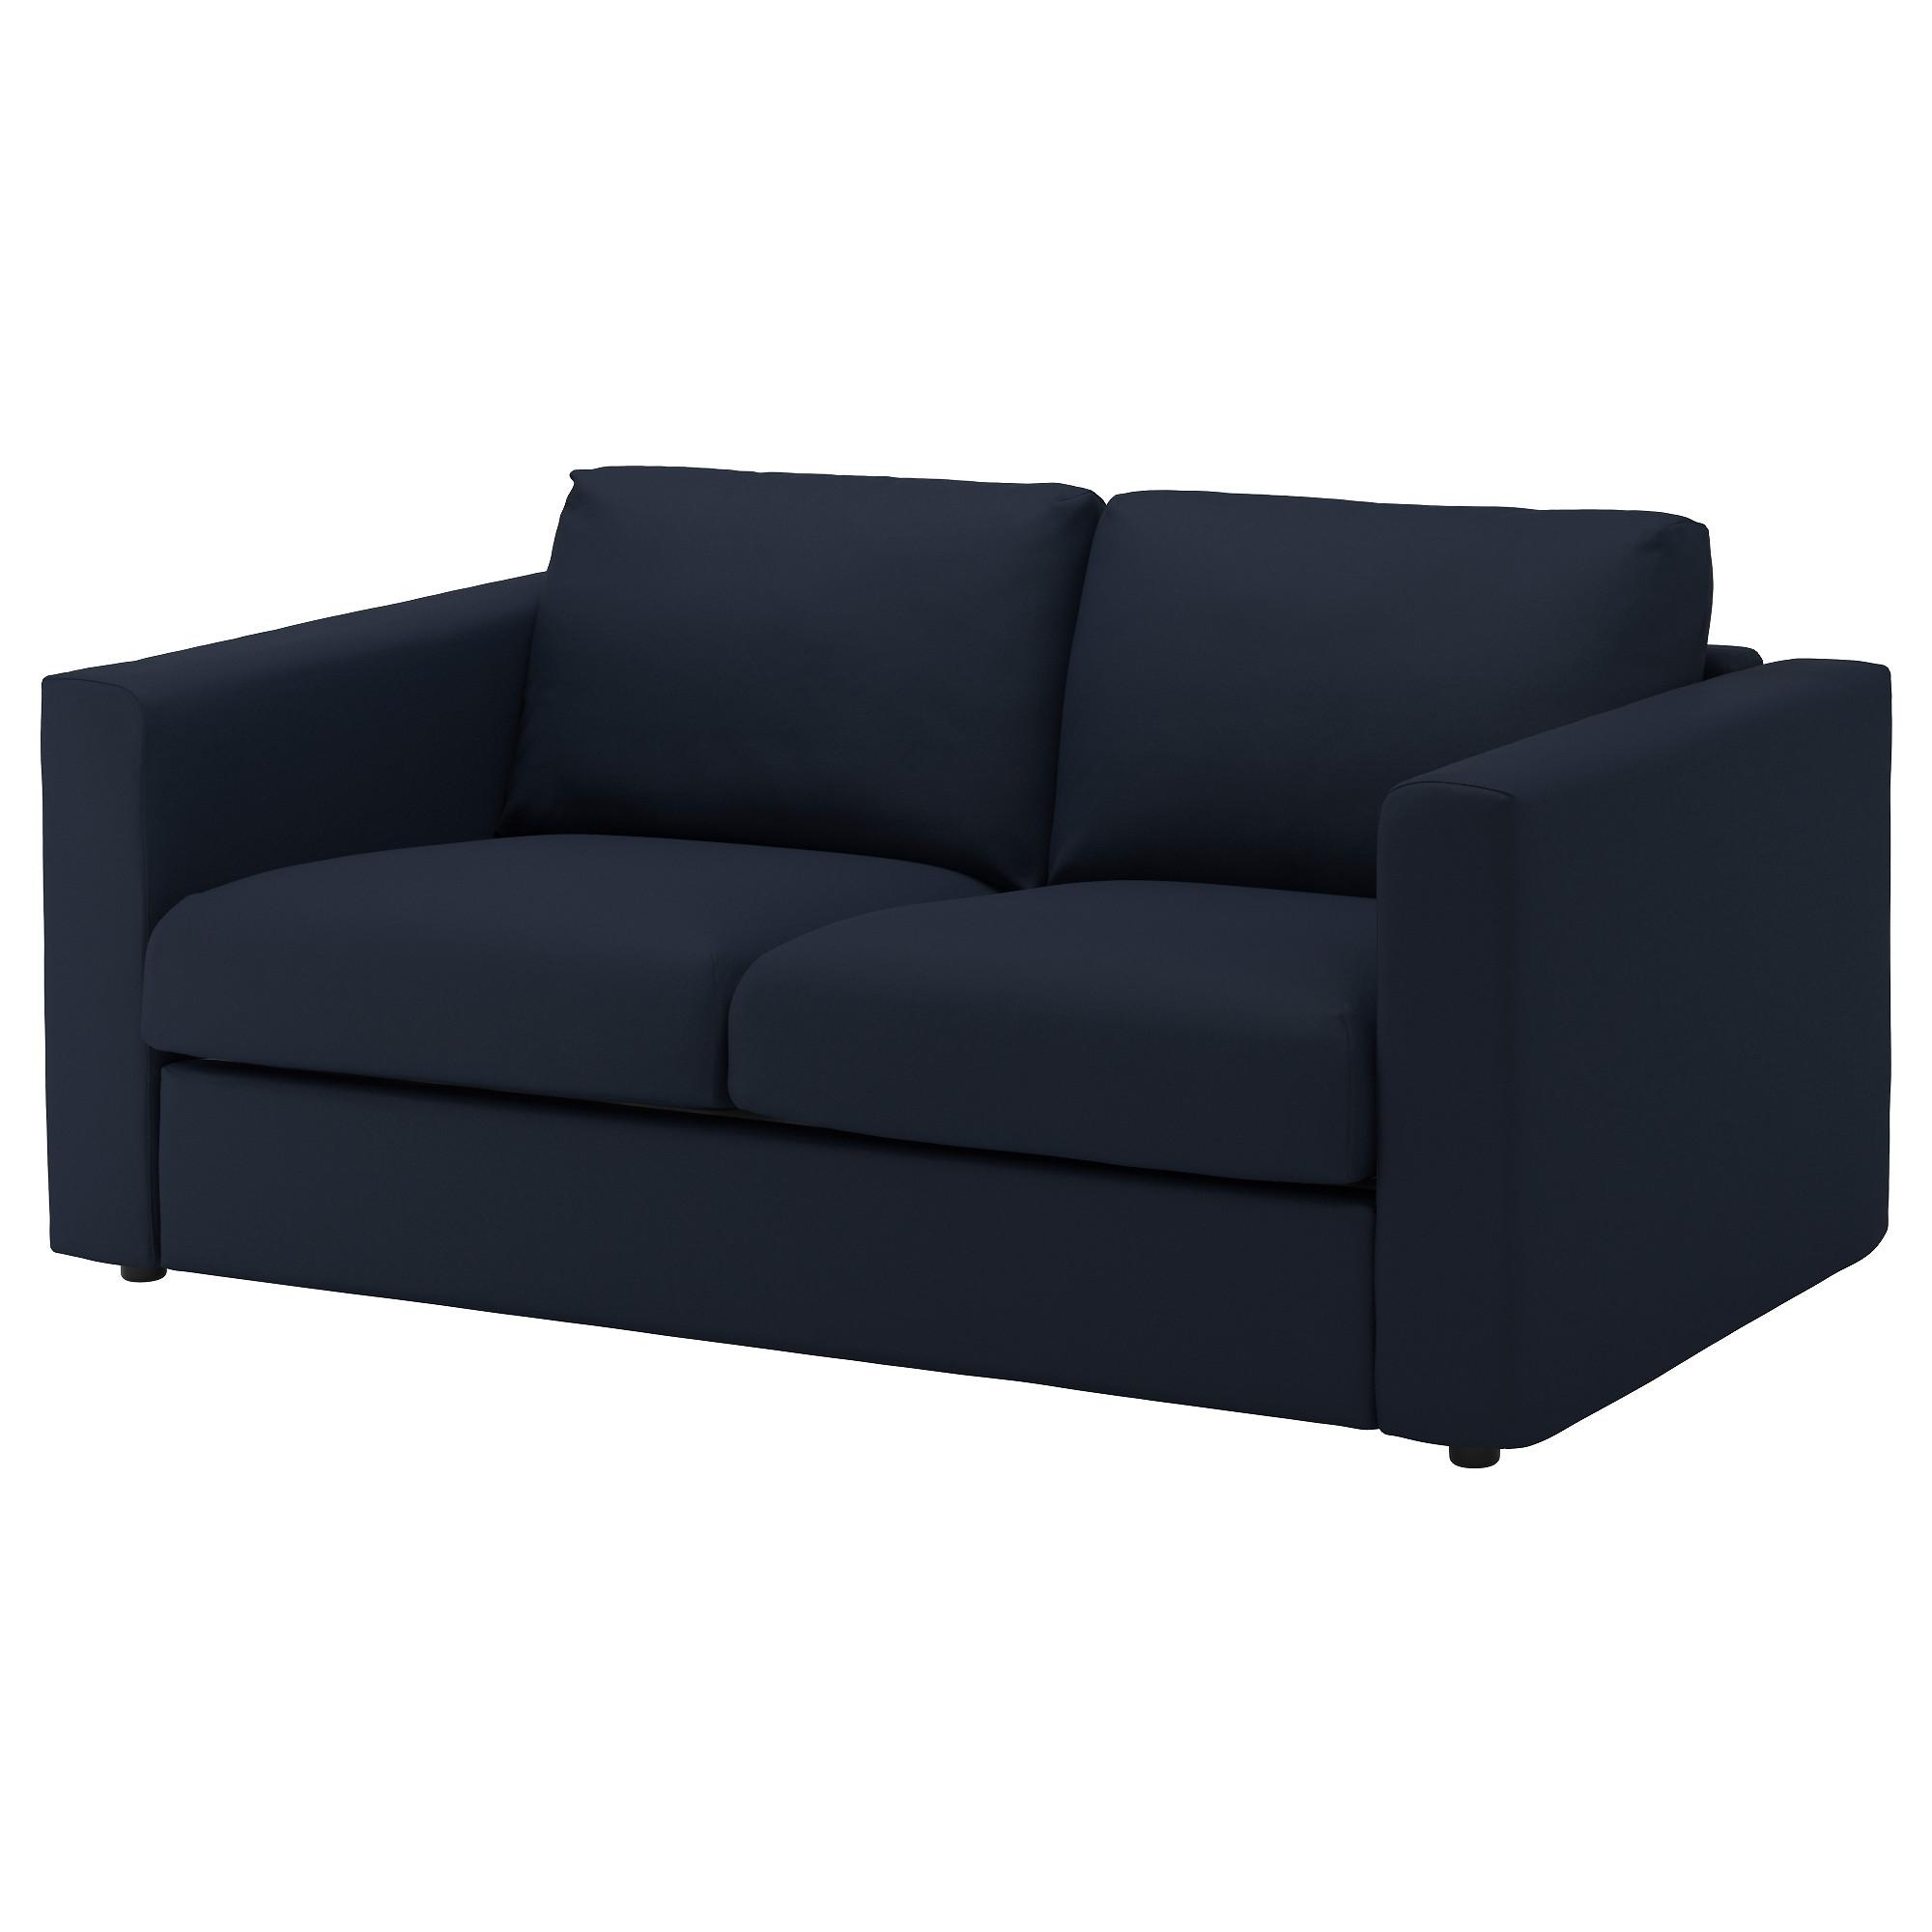 Vimle 2-Seat Sofa Gräsbo Black-Blue - Ikea inside Ikea Two Seater Sofas